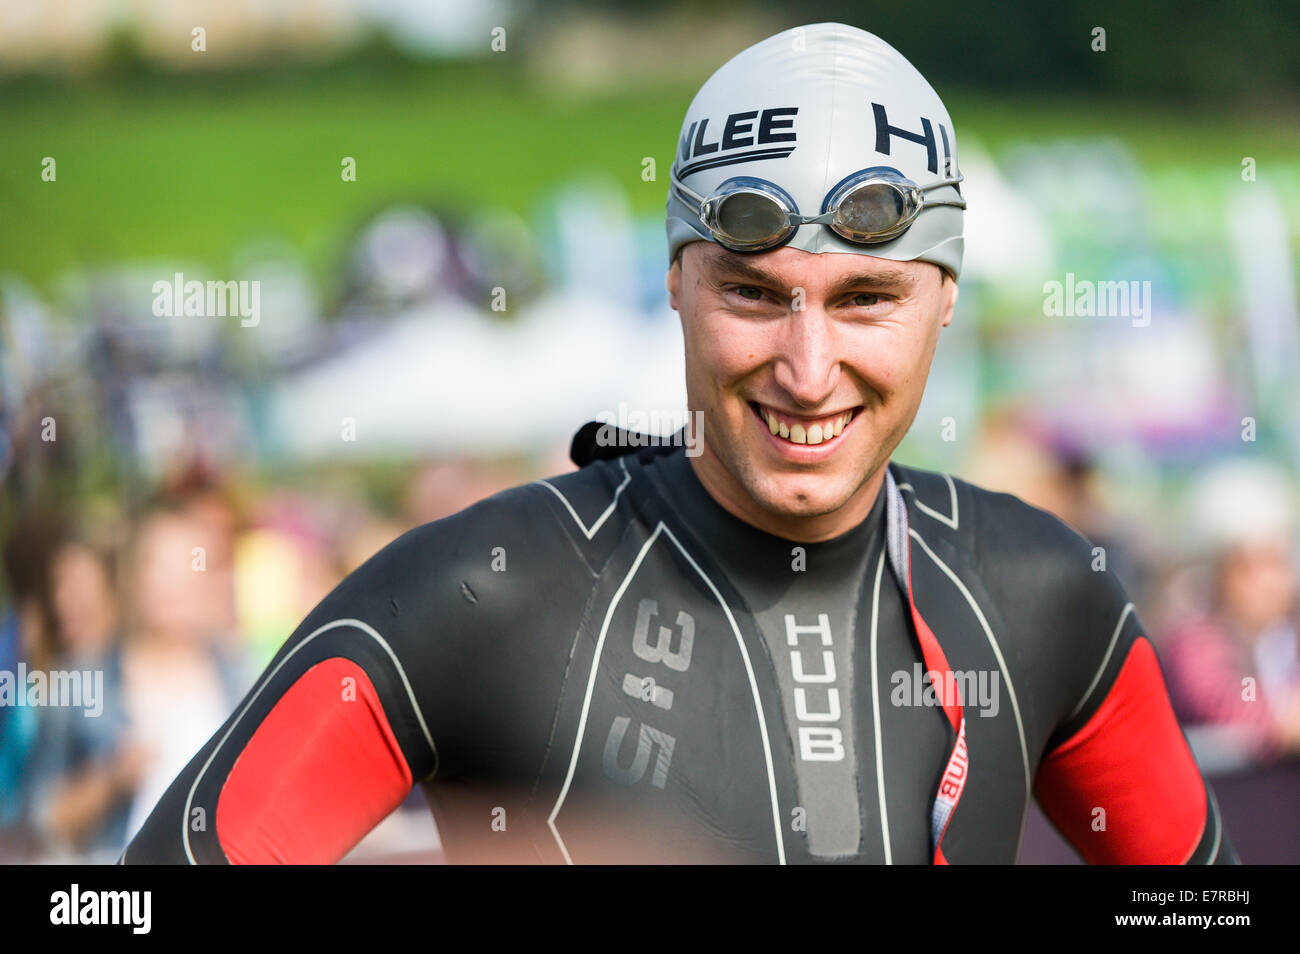 Competitor ready for the swim at the Brownlee Tri North Triathlon at Harewood house wearing a wetsuit and goggles - Stock Image